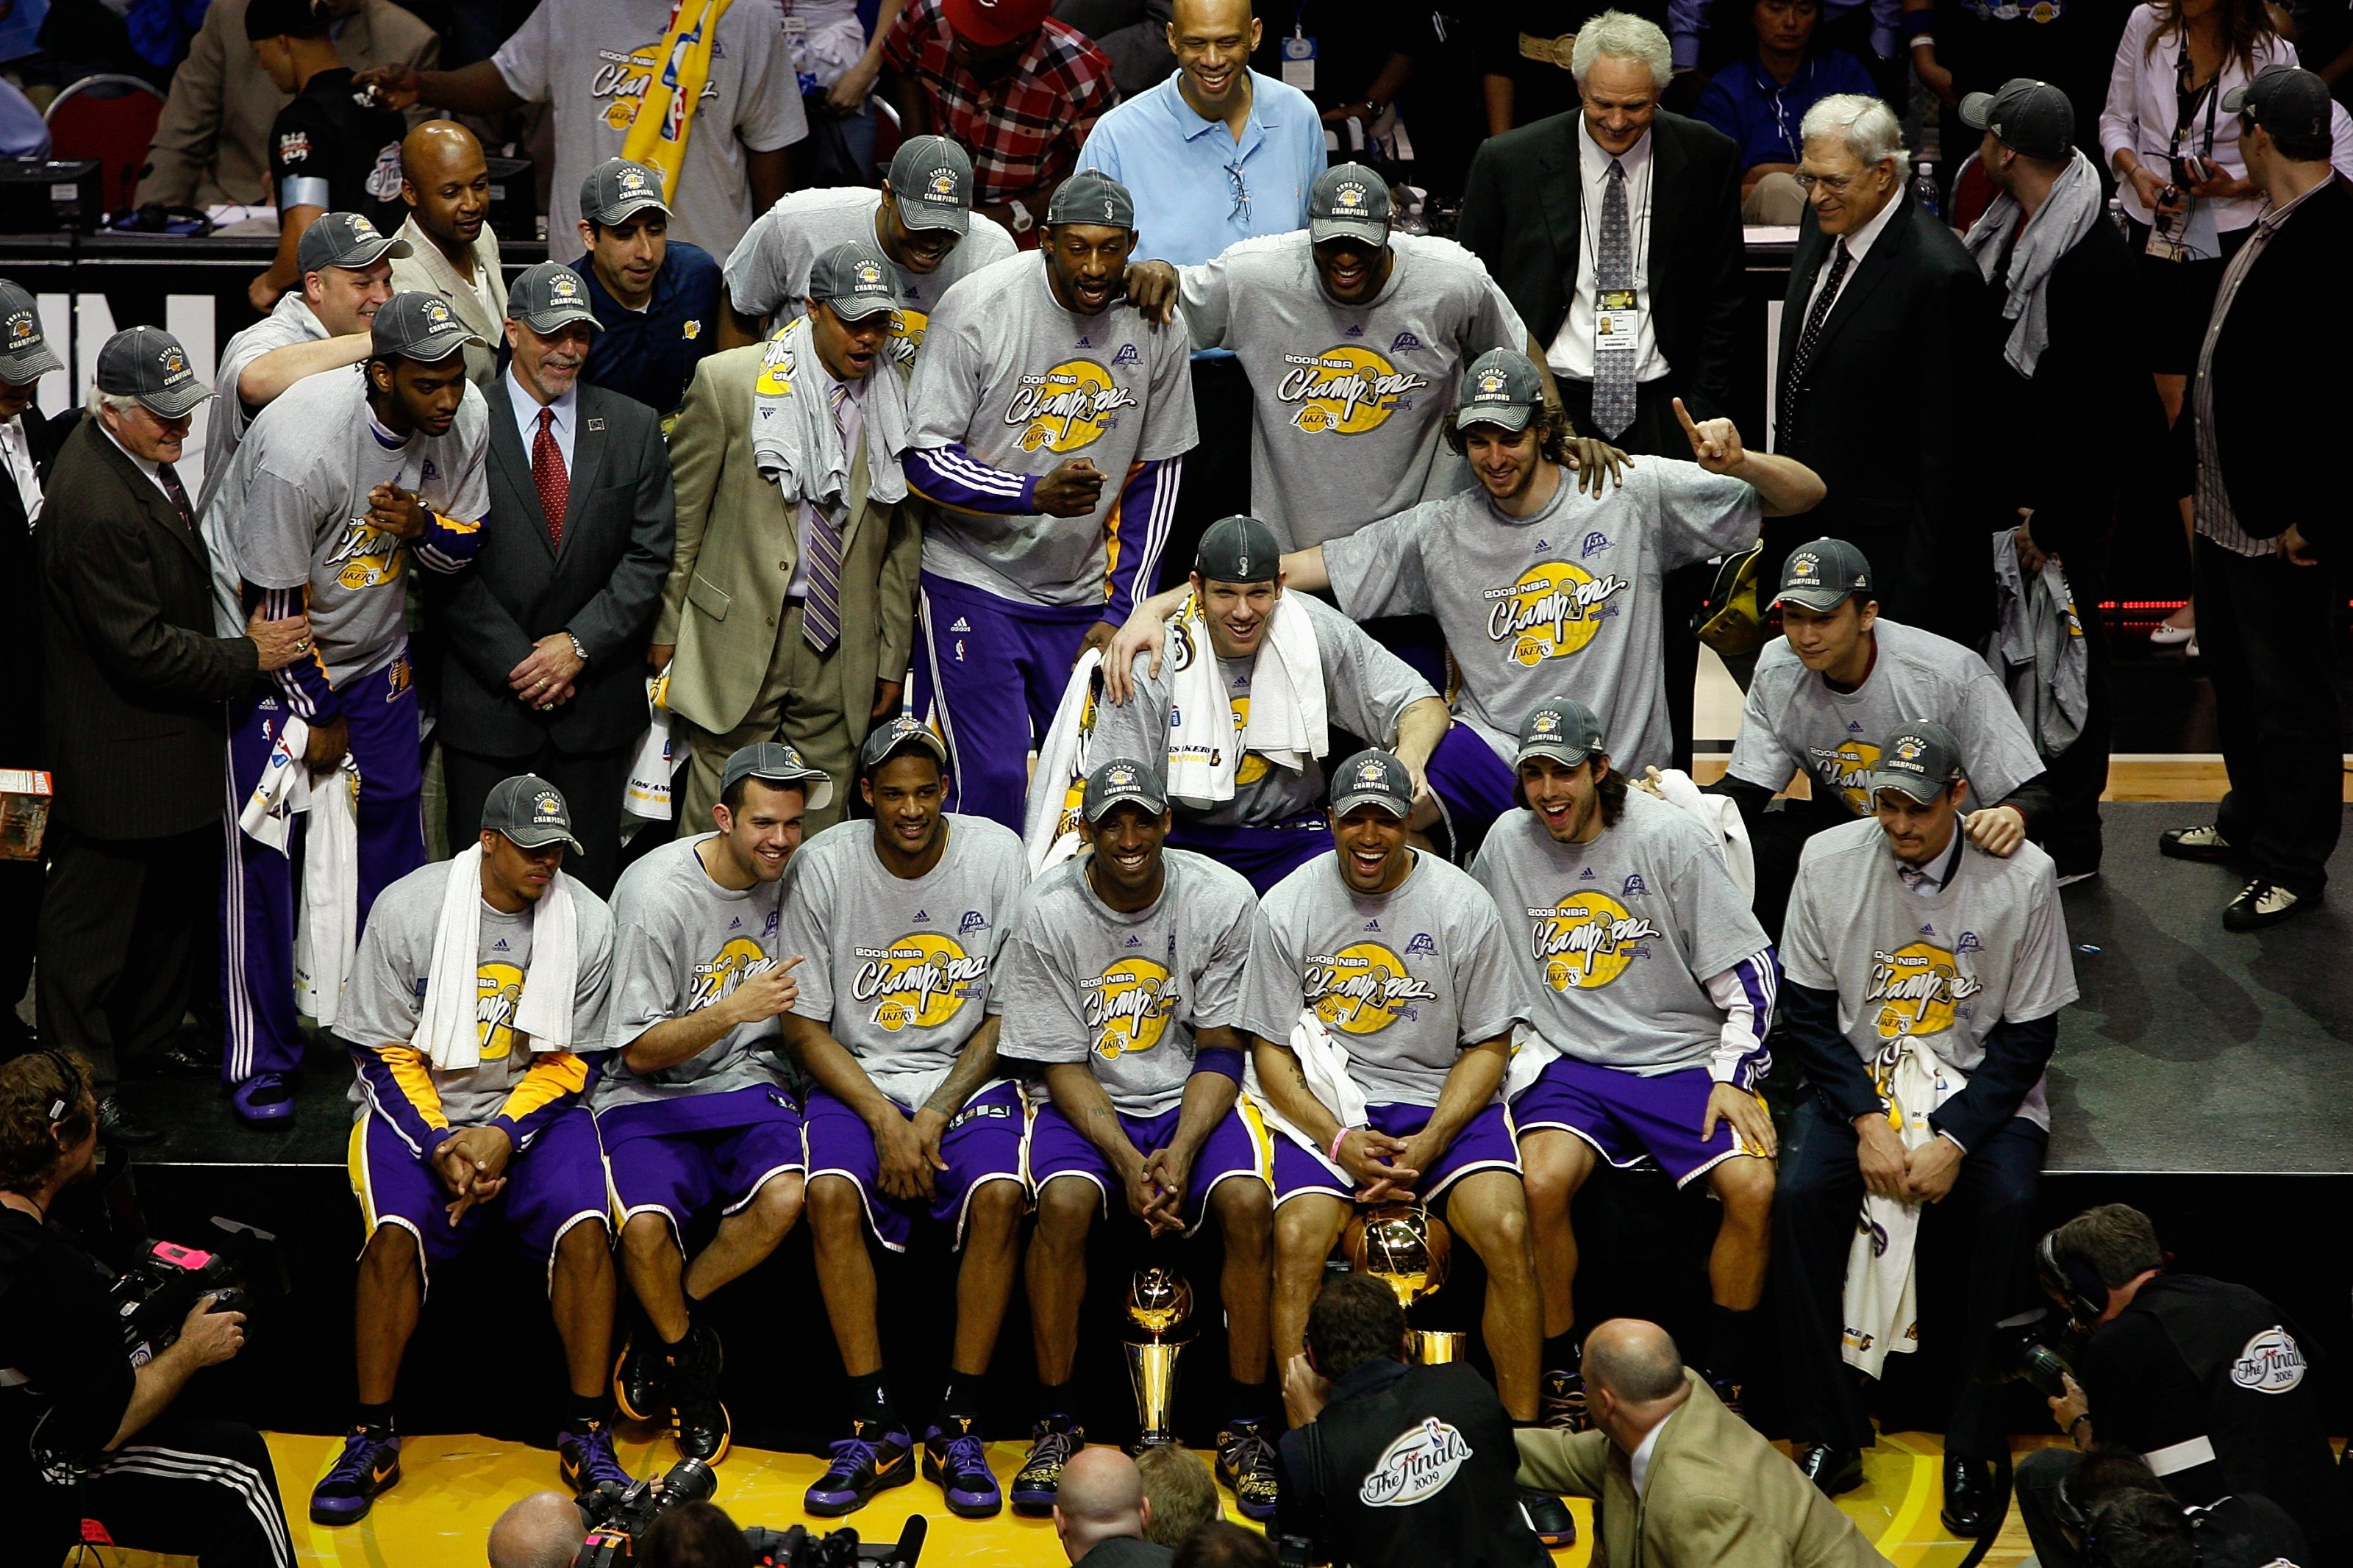 Los Angeles Lakers: A look back at the 2009 NBA Finals